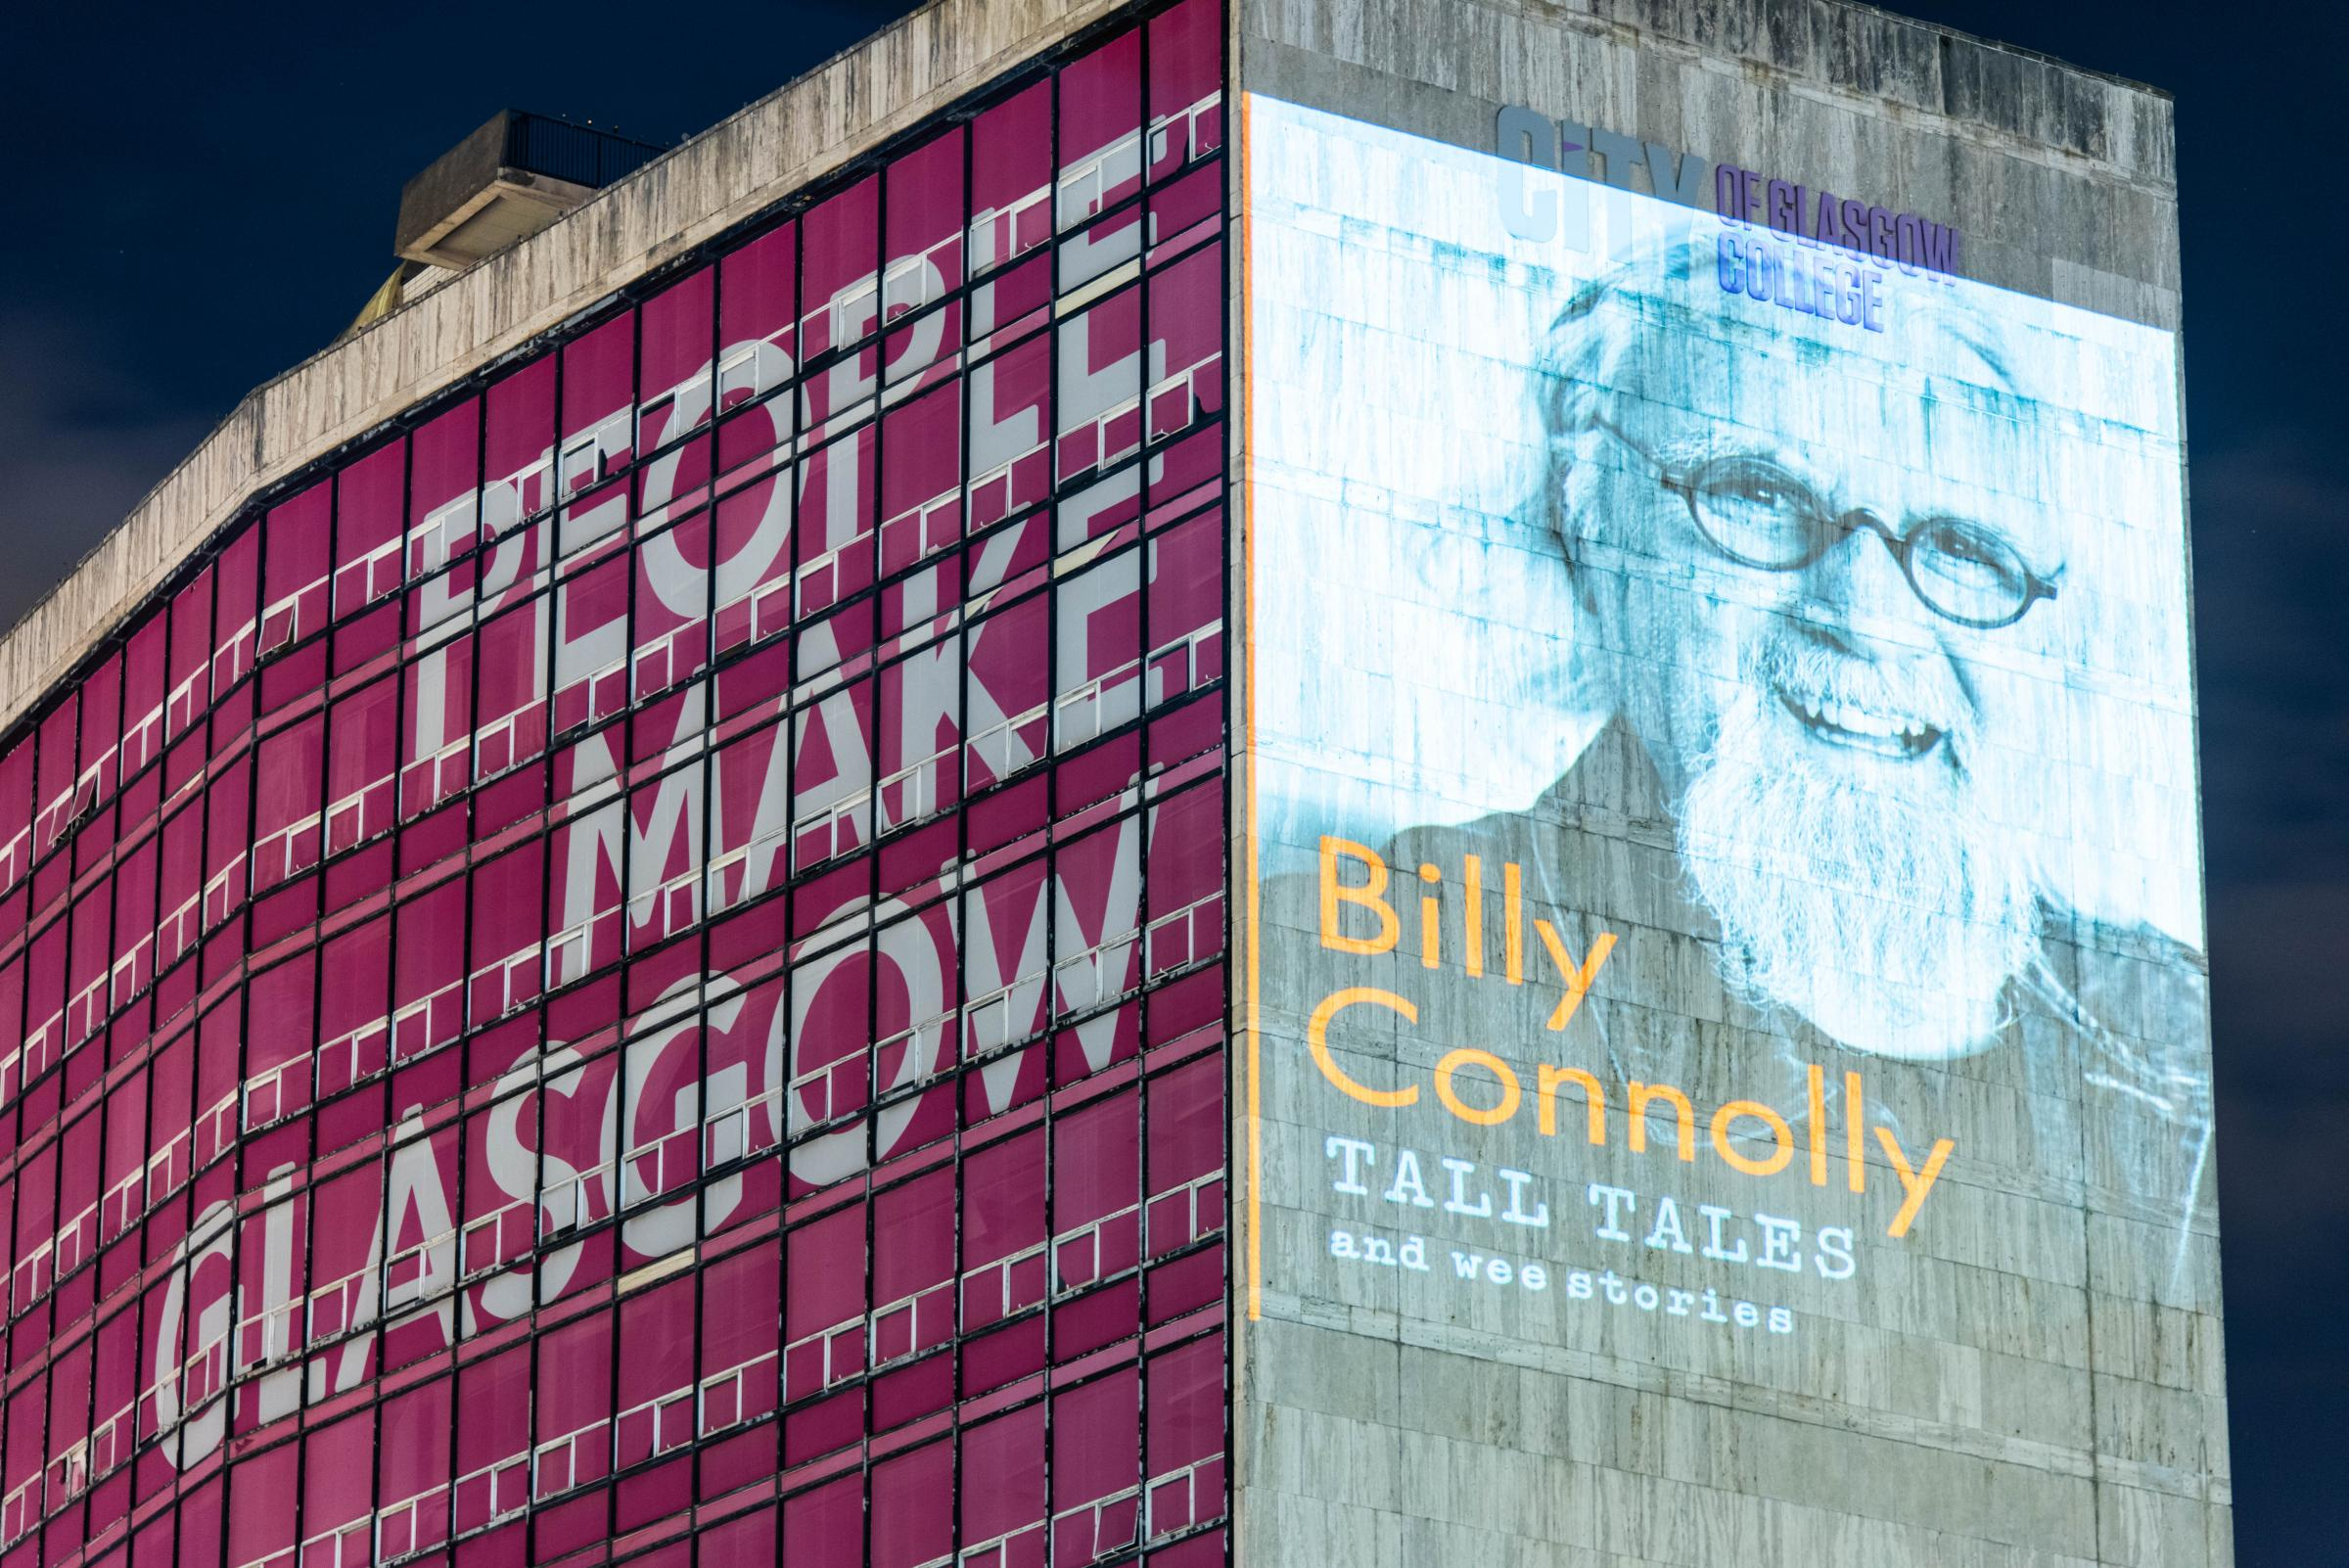 Billy Connolly lights up Glasgow for release of new book